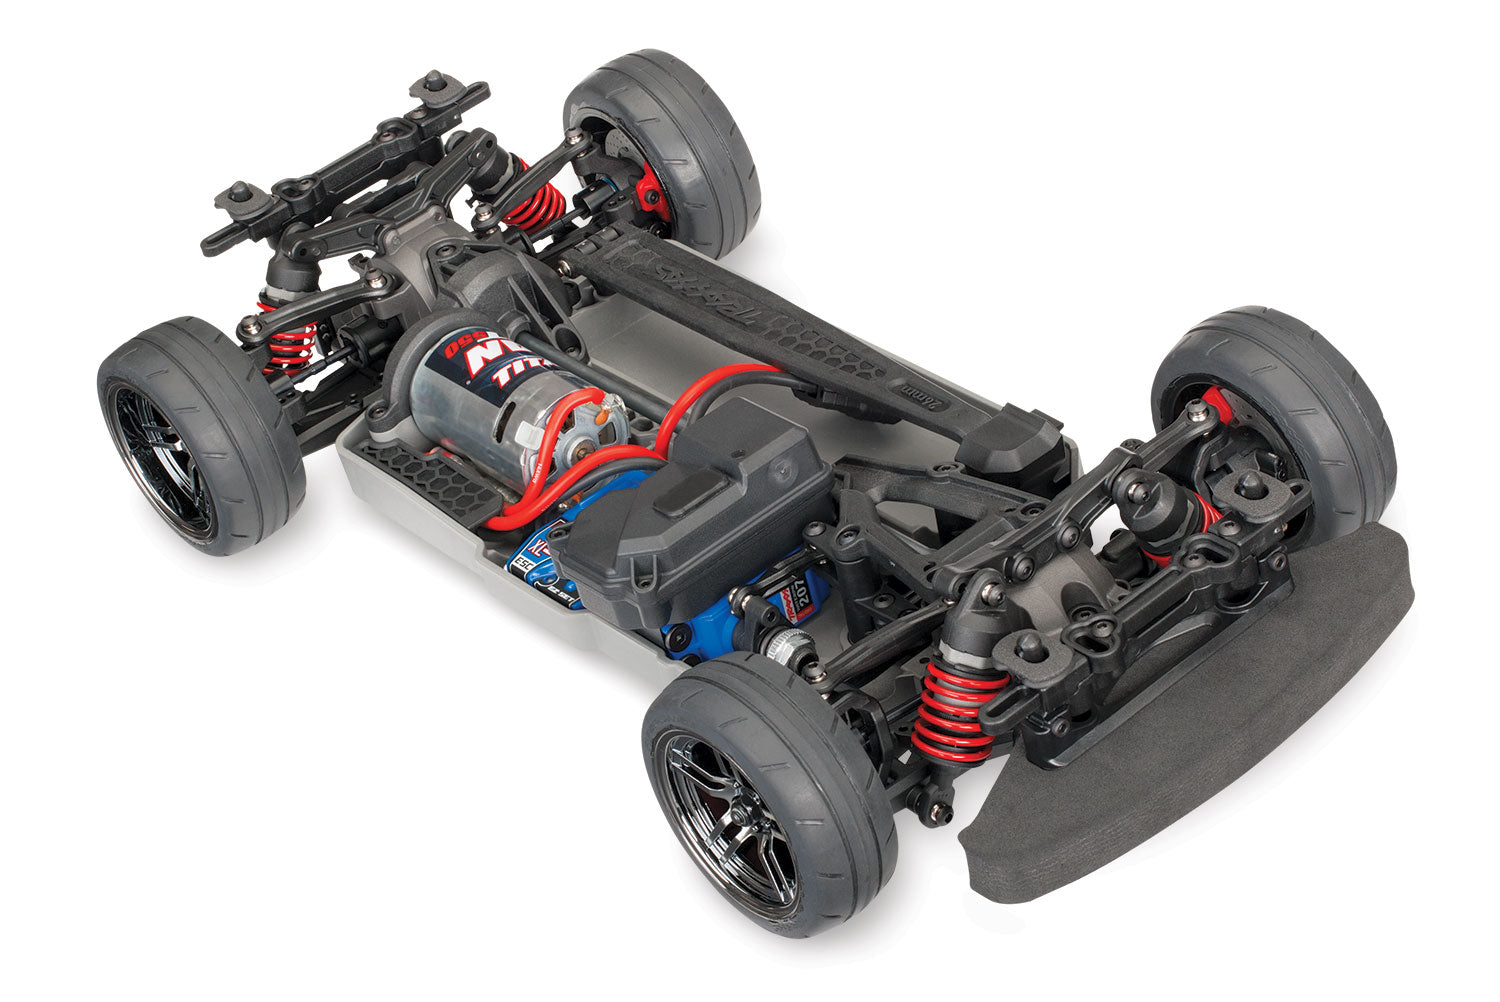 Traxxas 4-Tec 2.0: 1/10 Scale AWD Chassis with TQ 2.4GHz Radio System